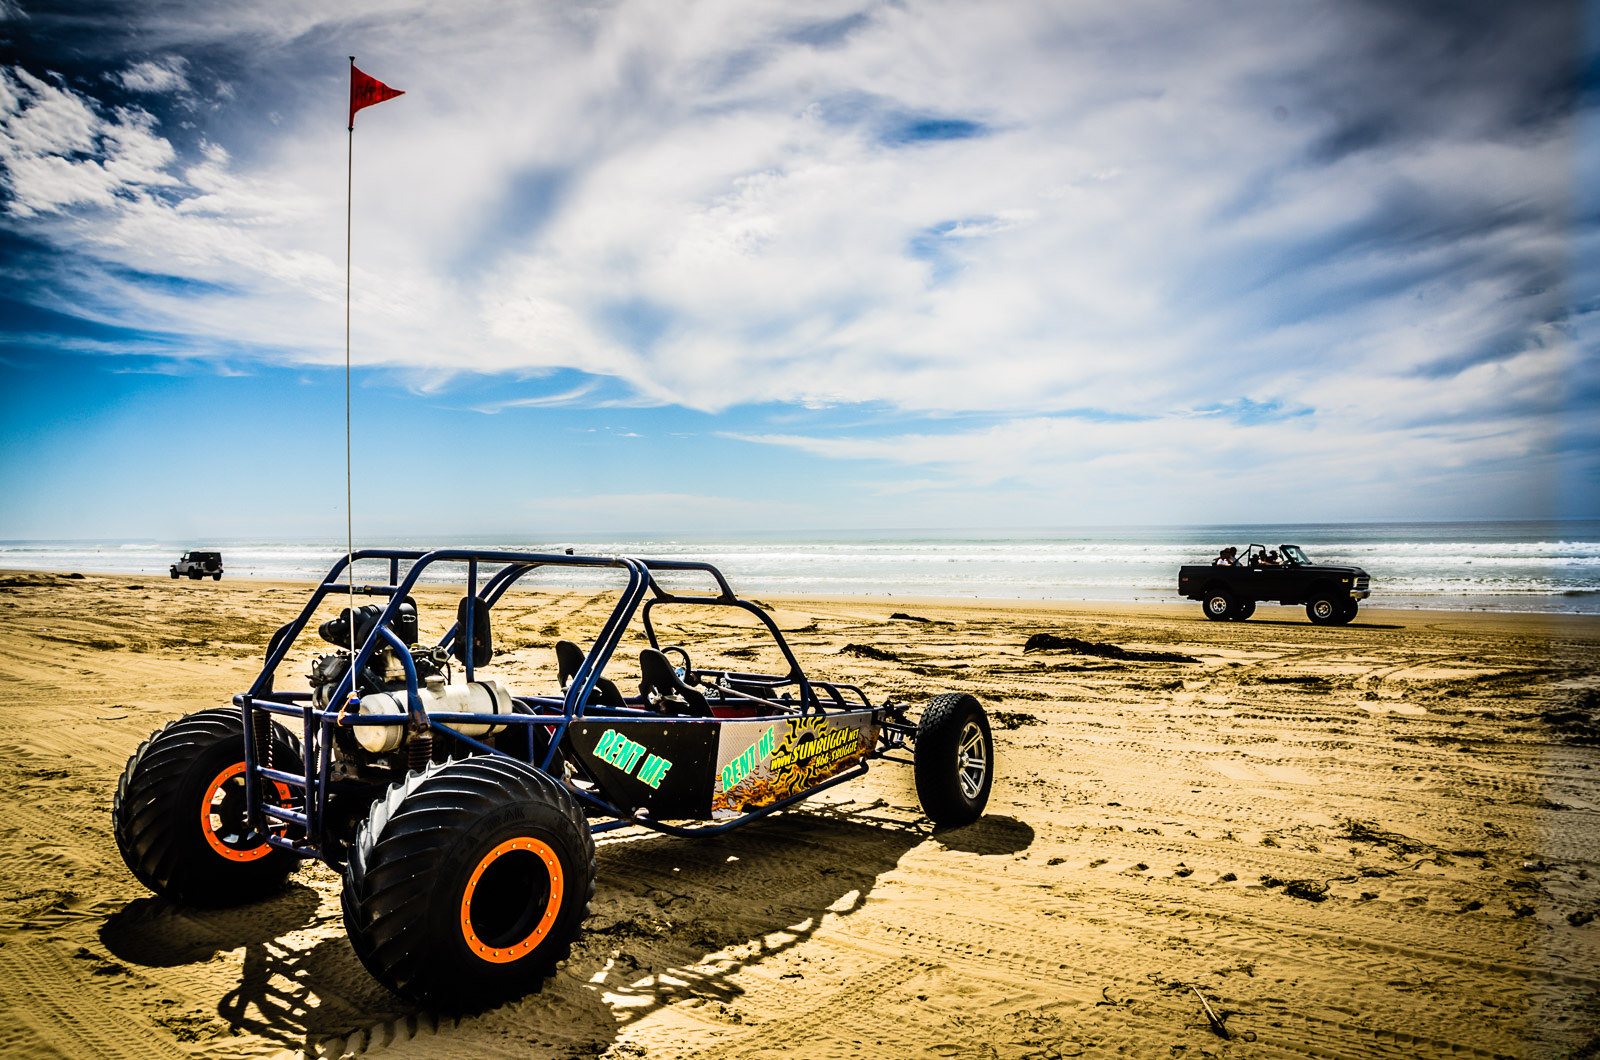 Dune Buggy on Beach